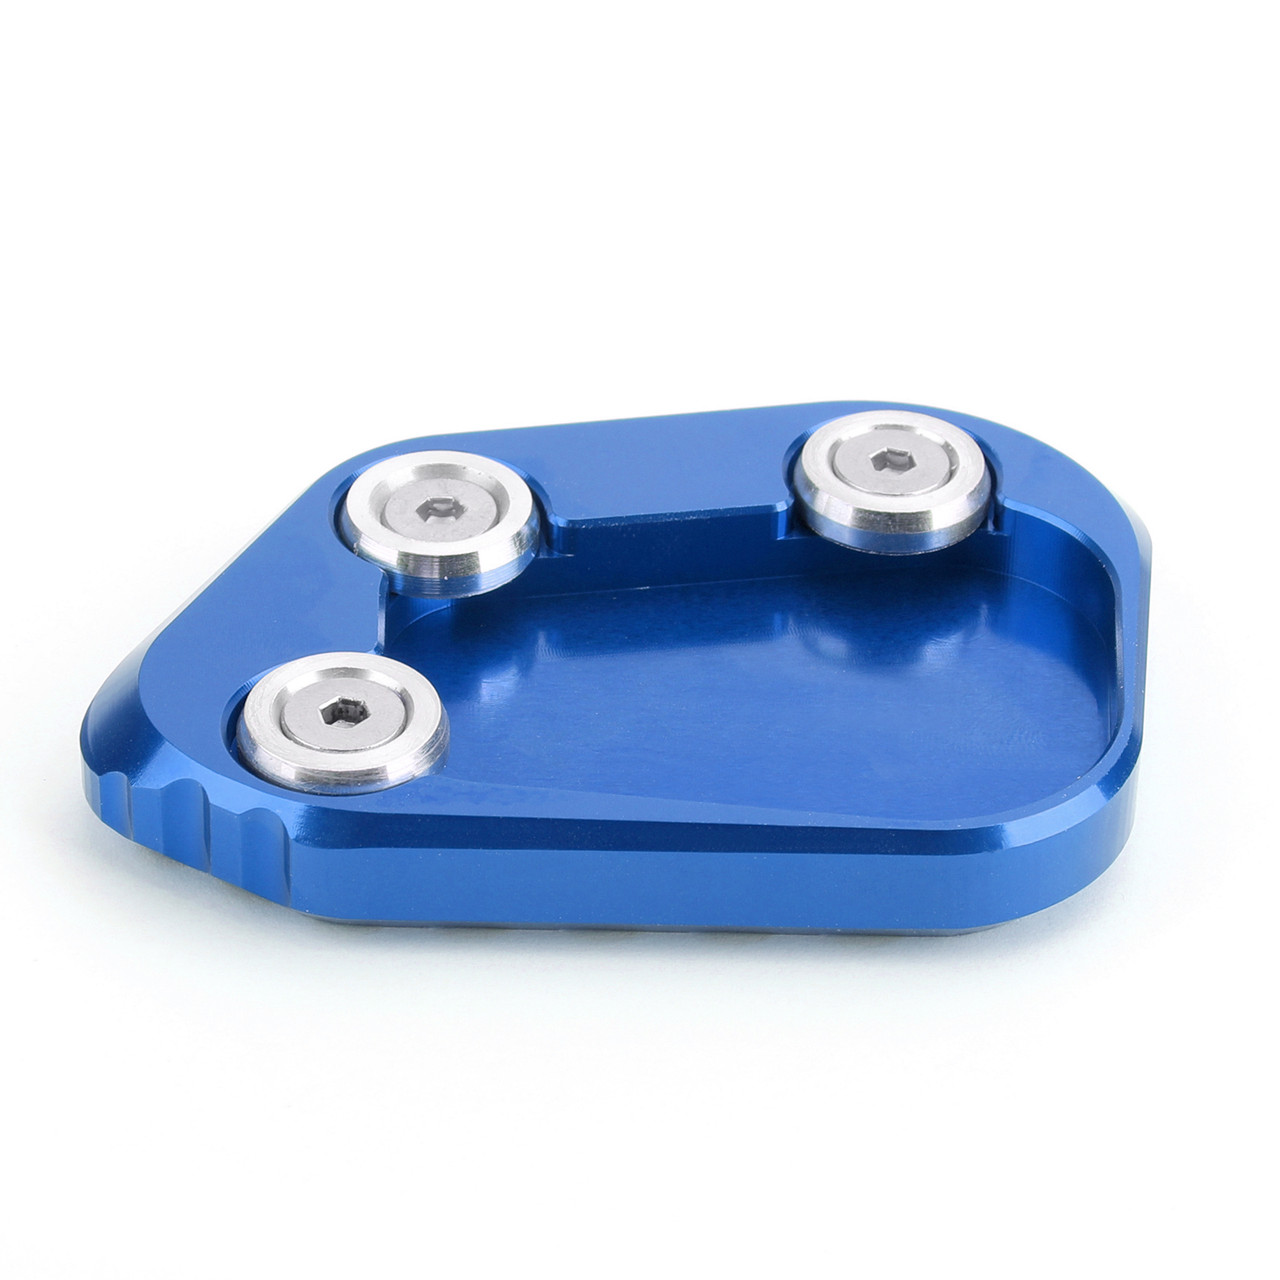 Kickstand Side Stand Extension Enlarger Pad For Honda CBR250RR 17-18 Blue